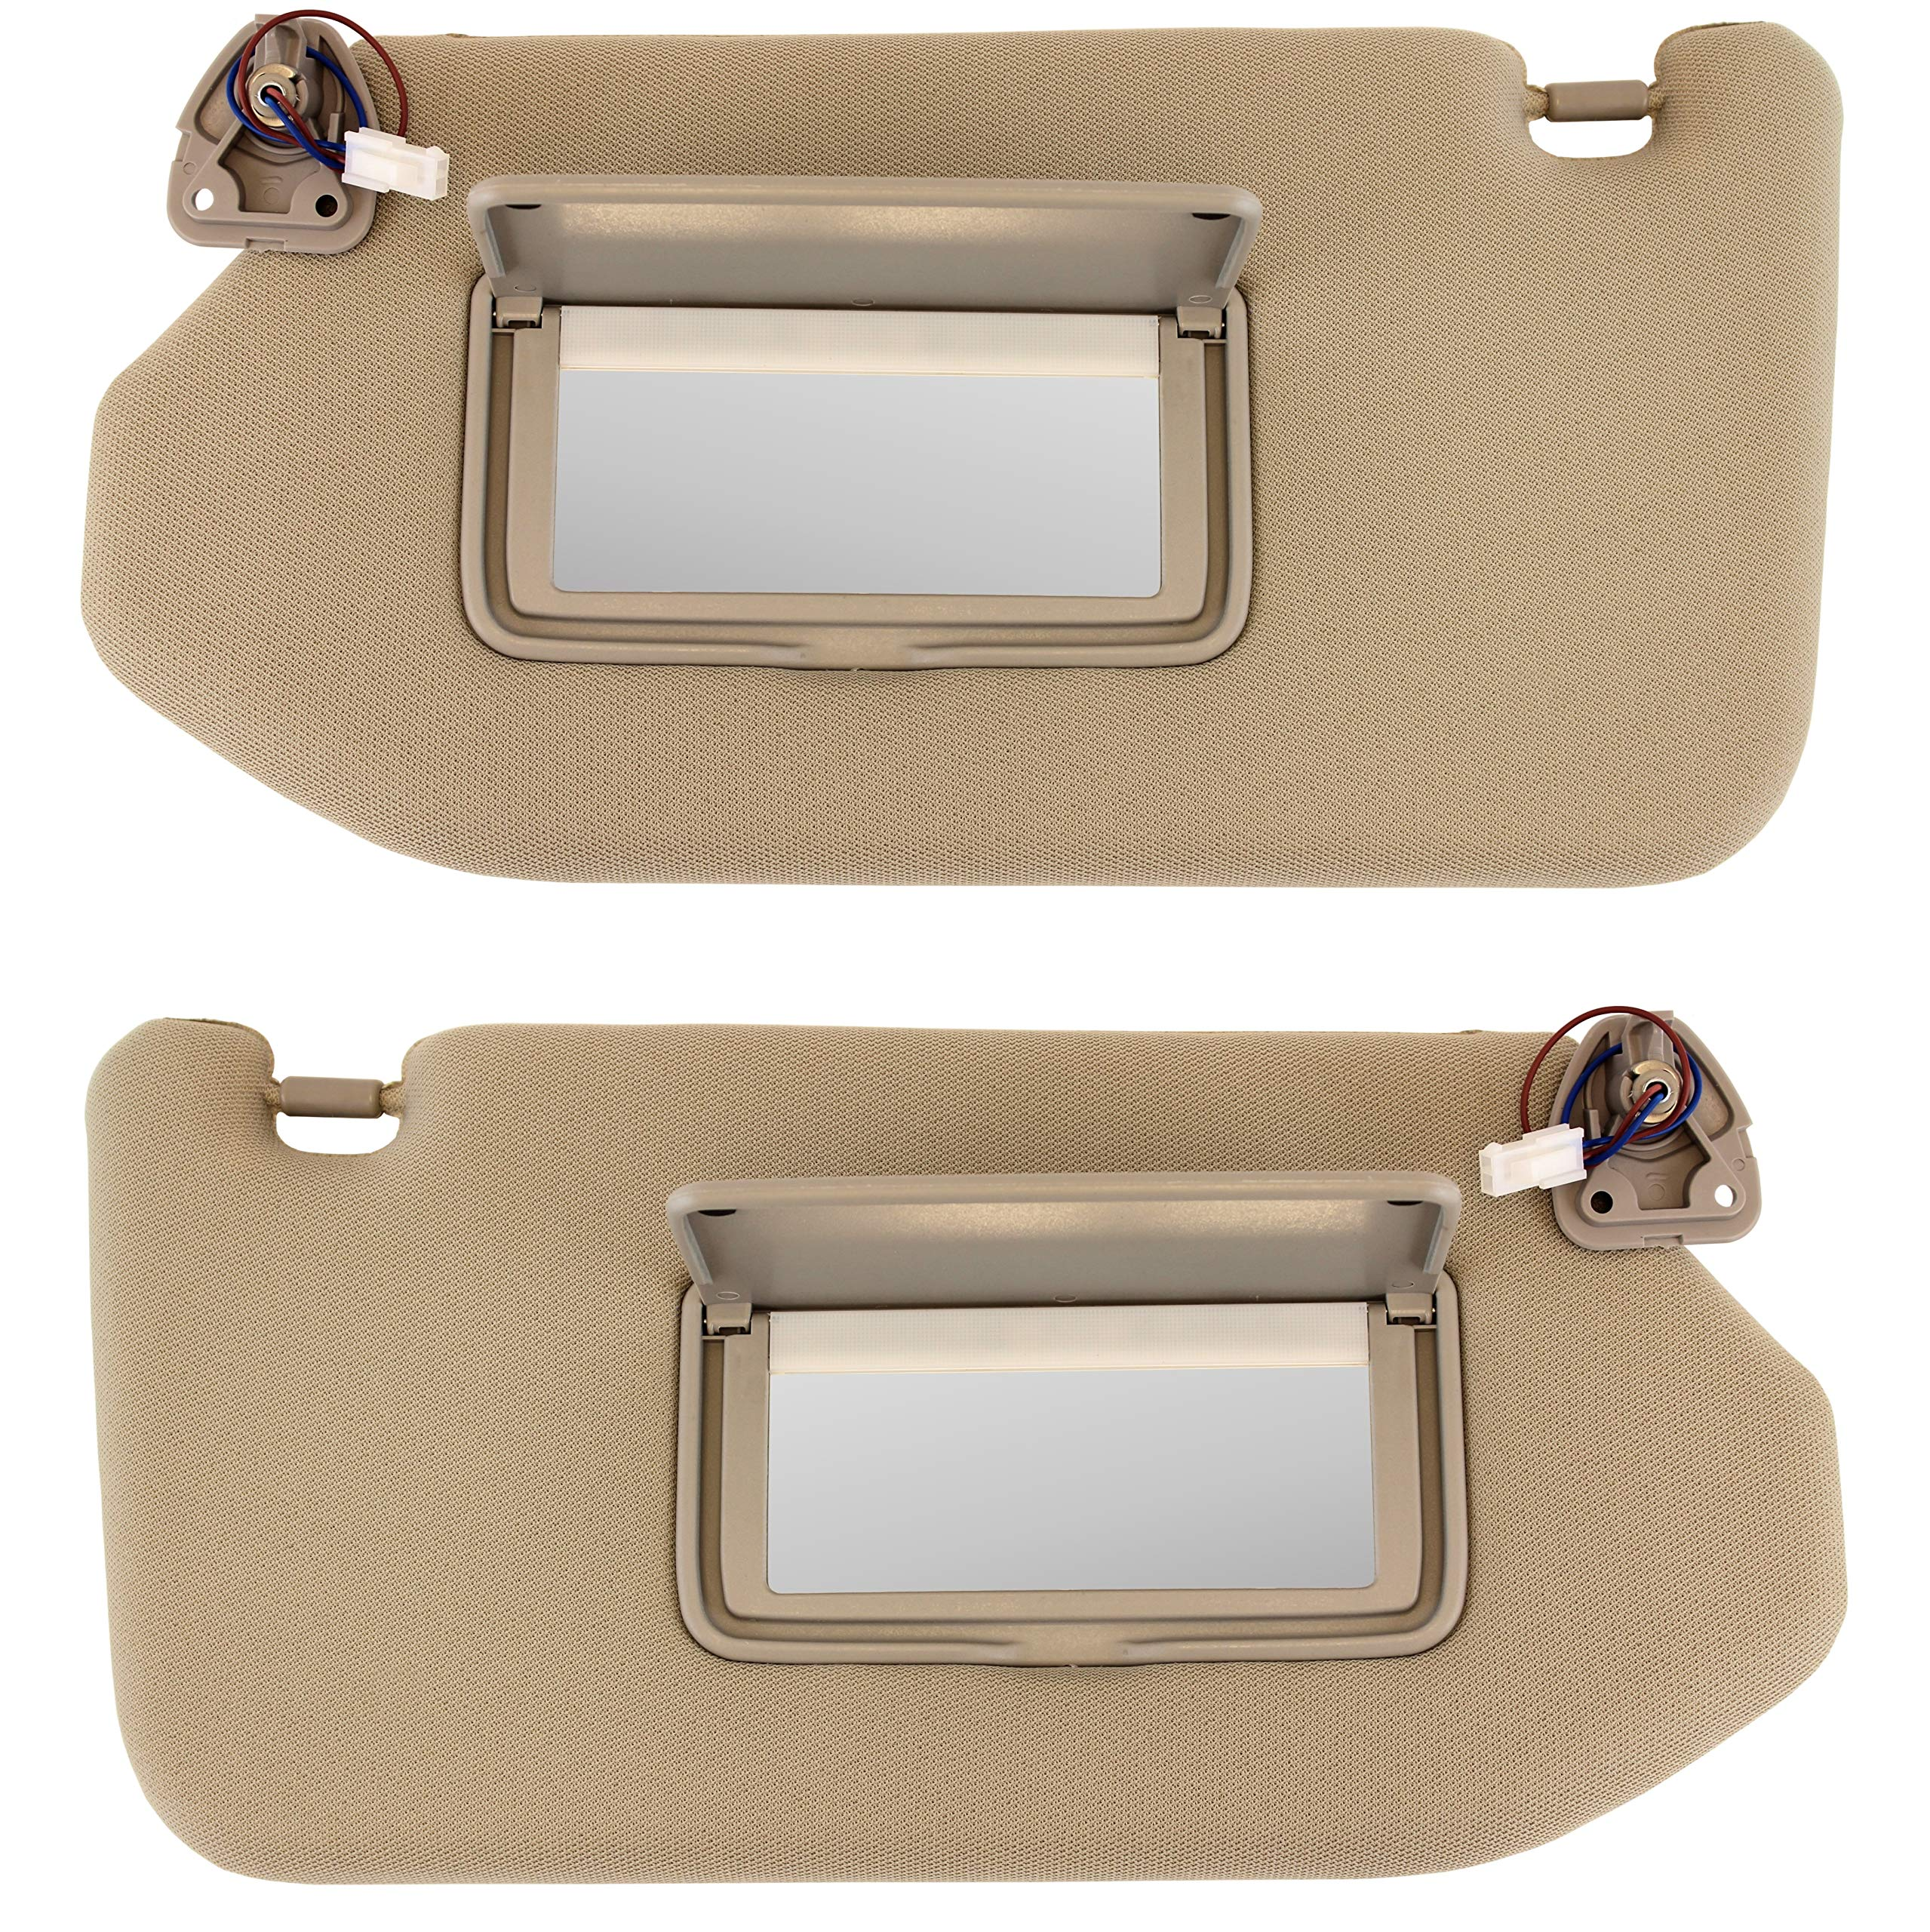 IAMAUTO 61776 Left Driver and Right Passenger TAN Sun Visor Set with Lamp for 2013 2014 2015 2016 2017 2018 Nissan Pathfinder and 2014-2017 Infiniti QX60